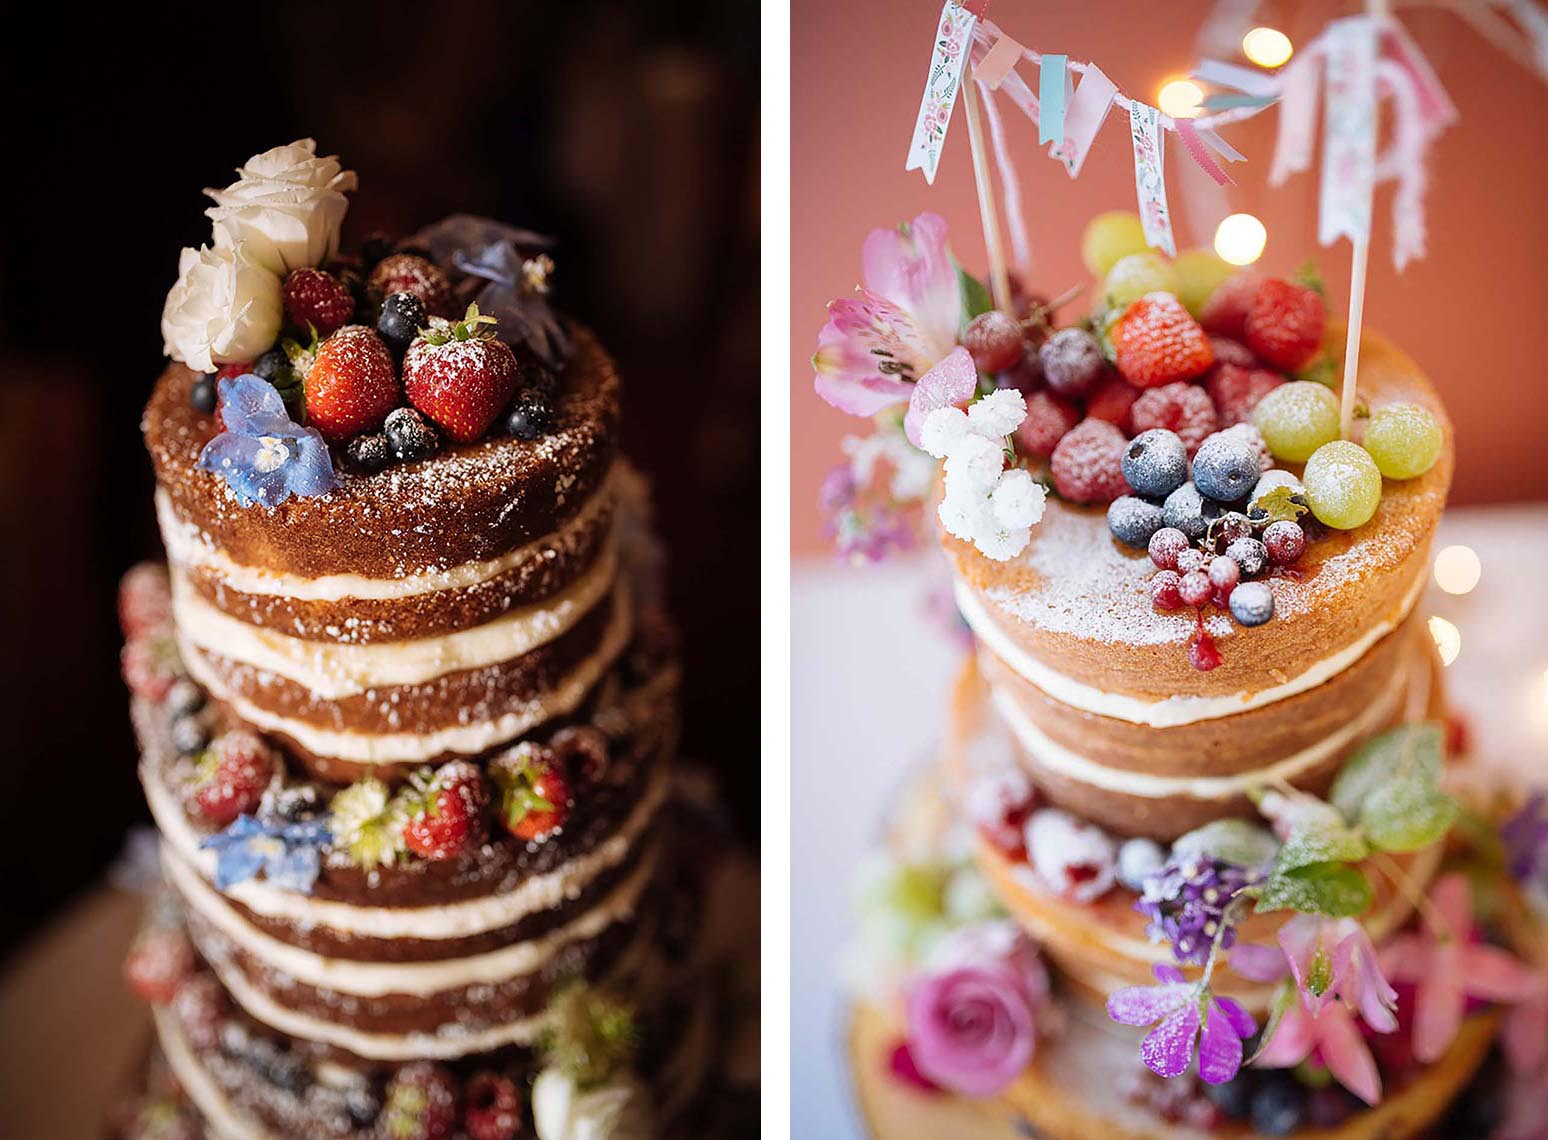 wedding-sponge-cake-fruit-berries-cream-tiered-food-catering-15